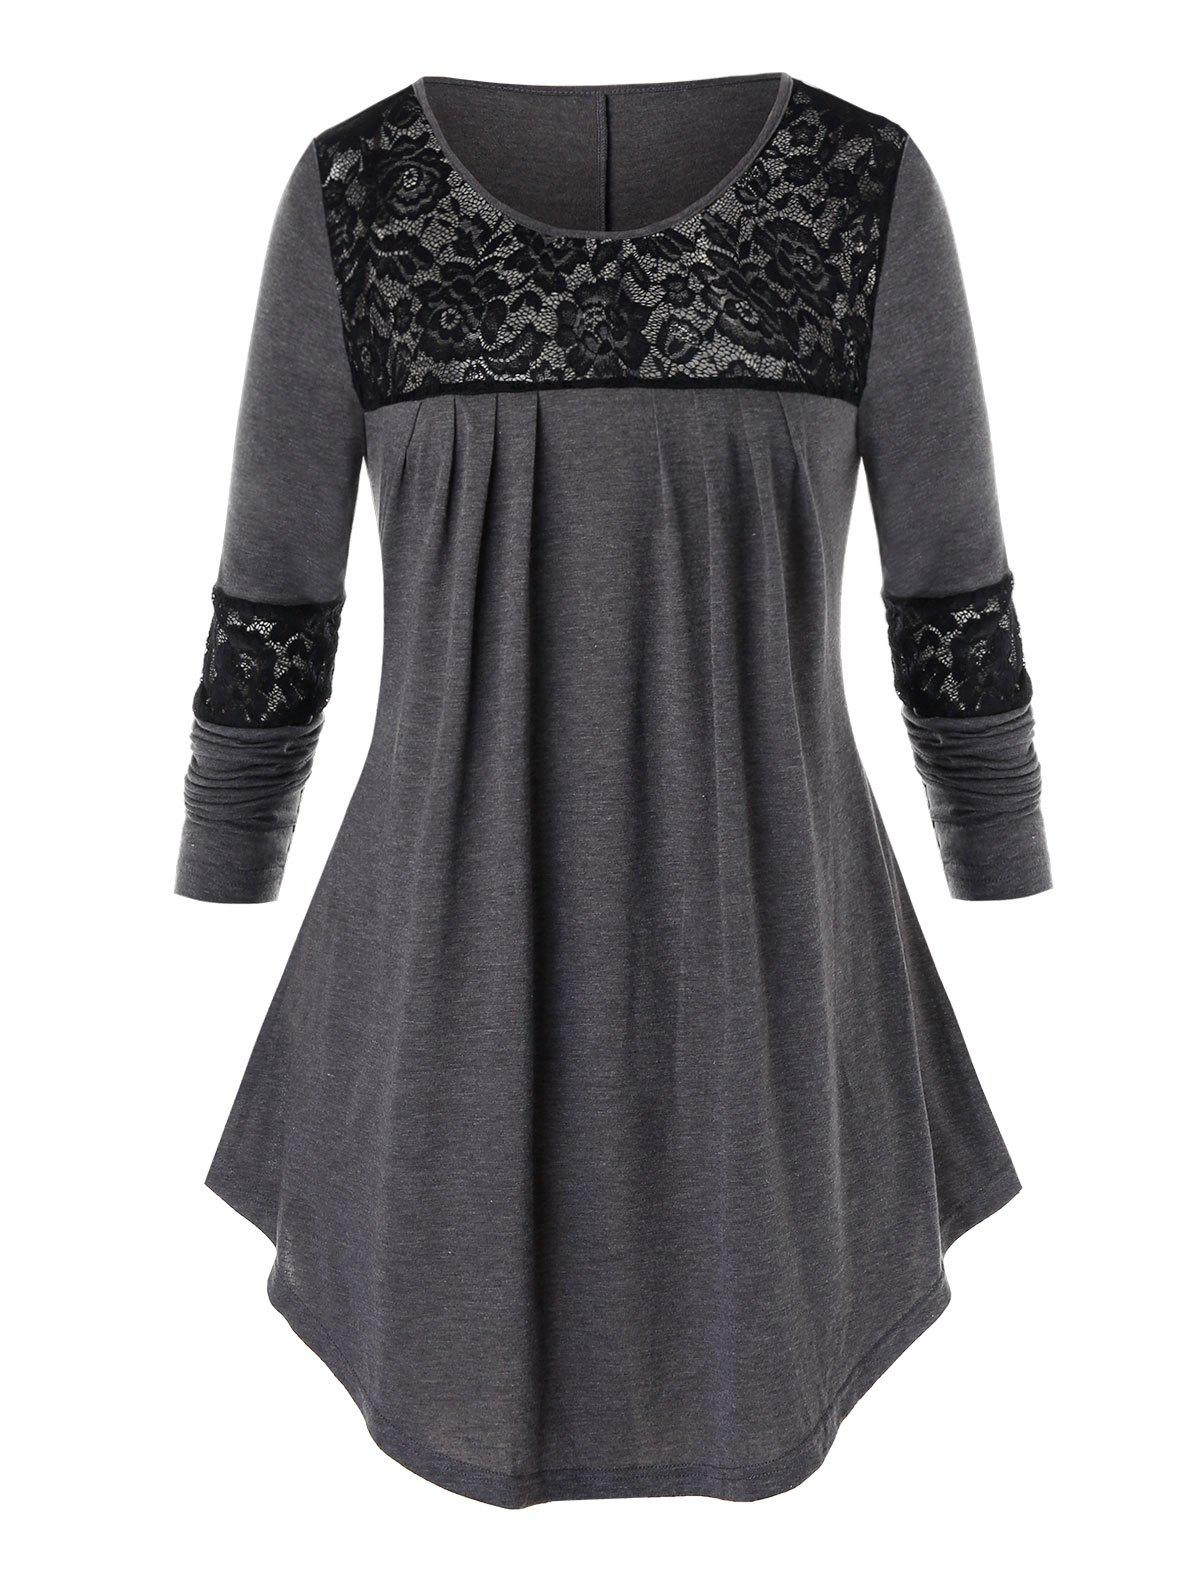 Plus Size Floral Lace Panel Long Sleeve Tee - CARBON GRAY 4X